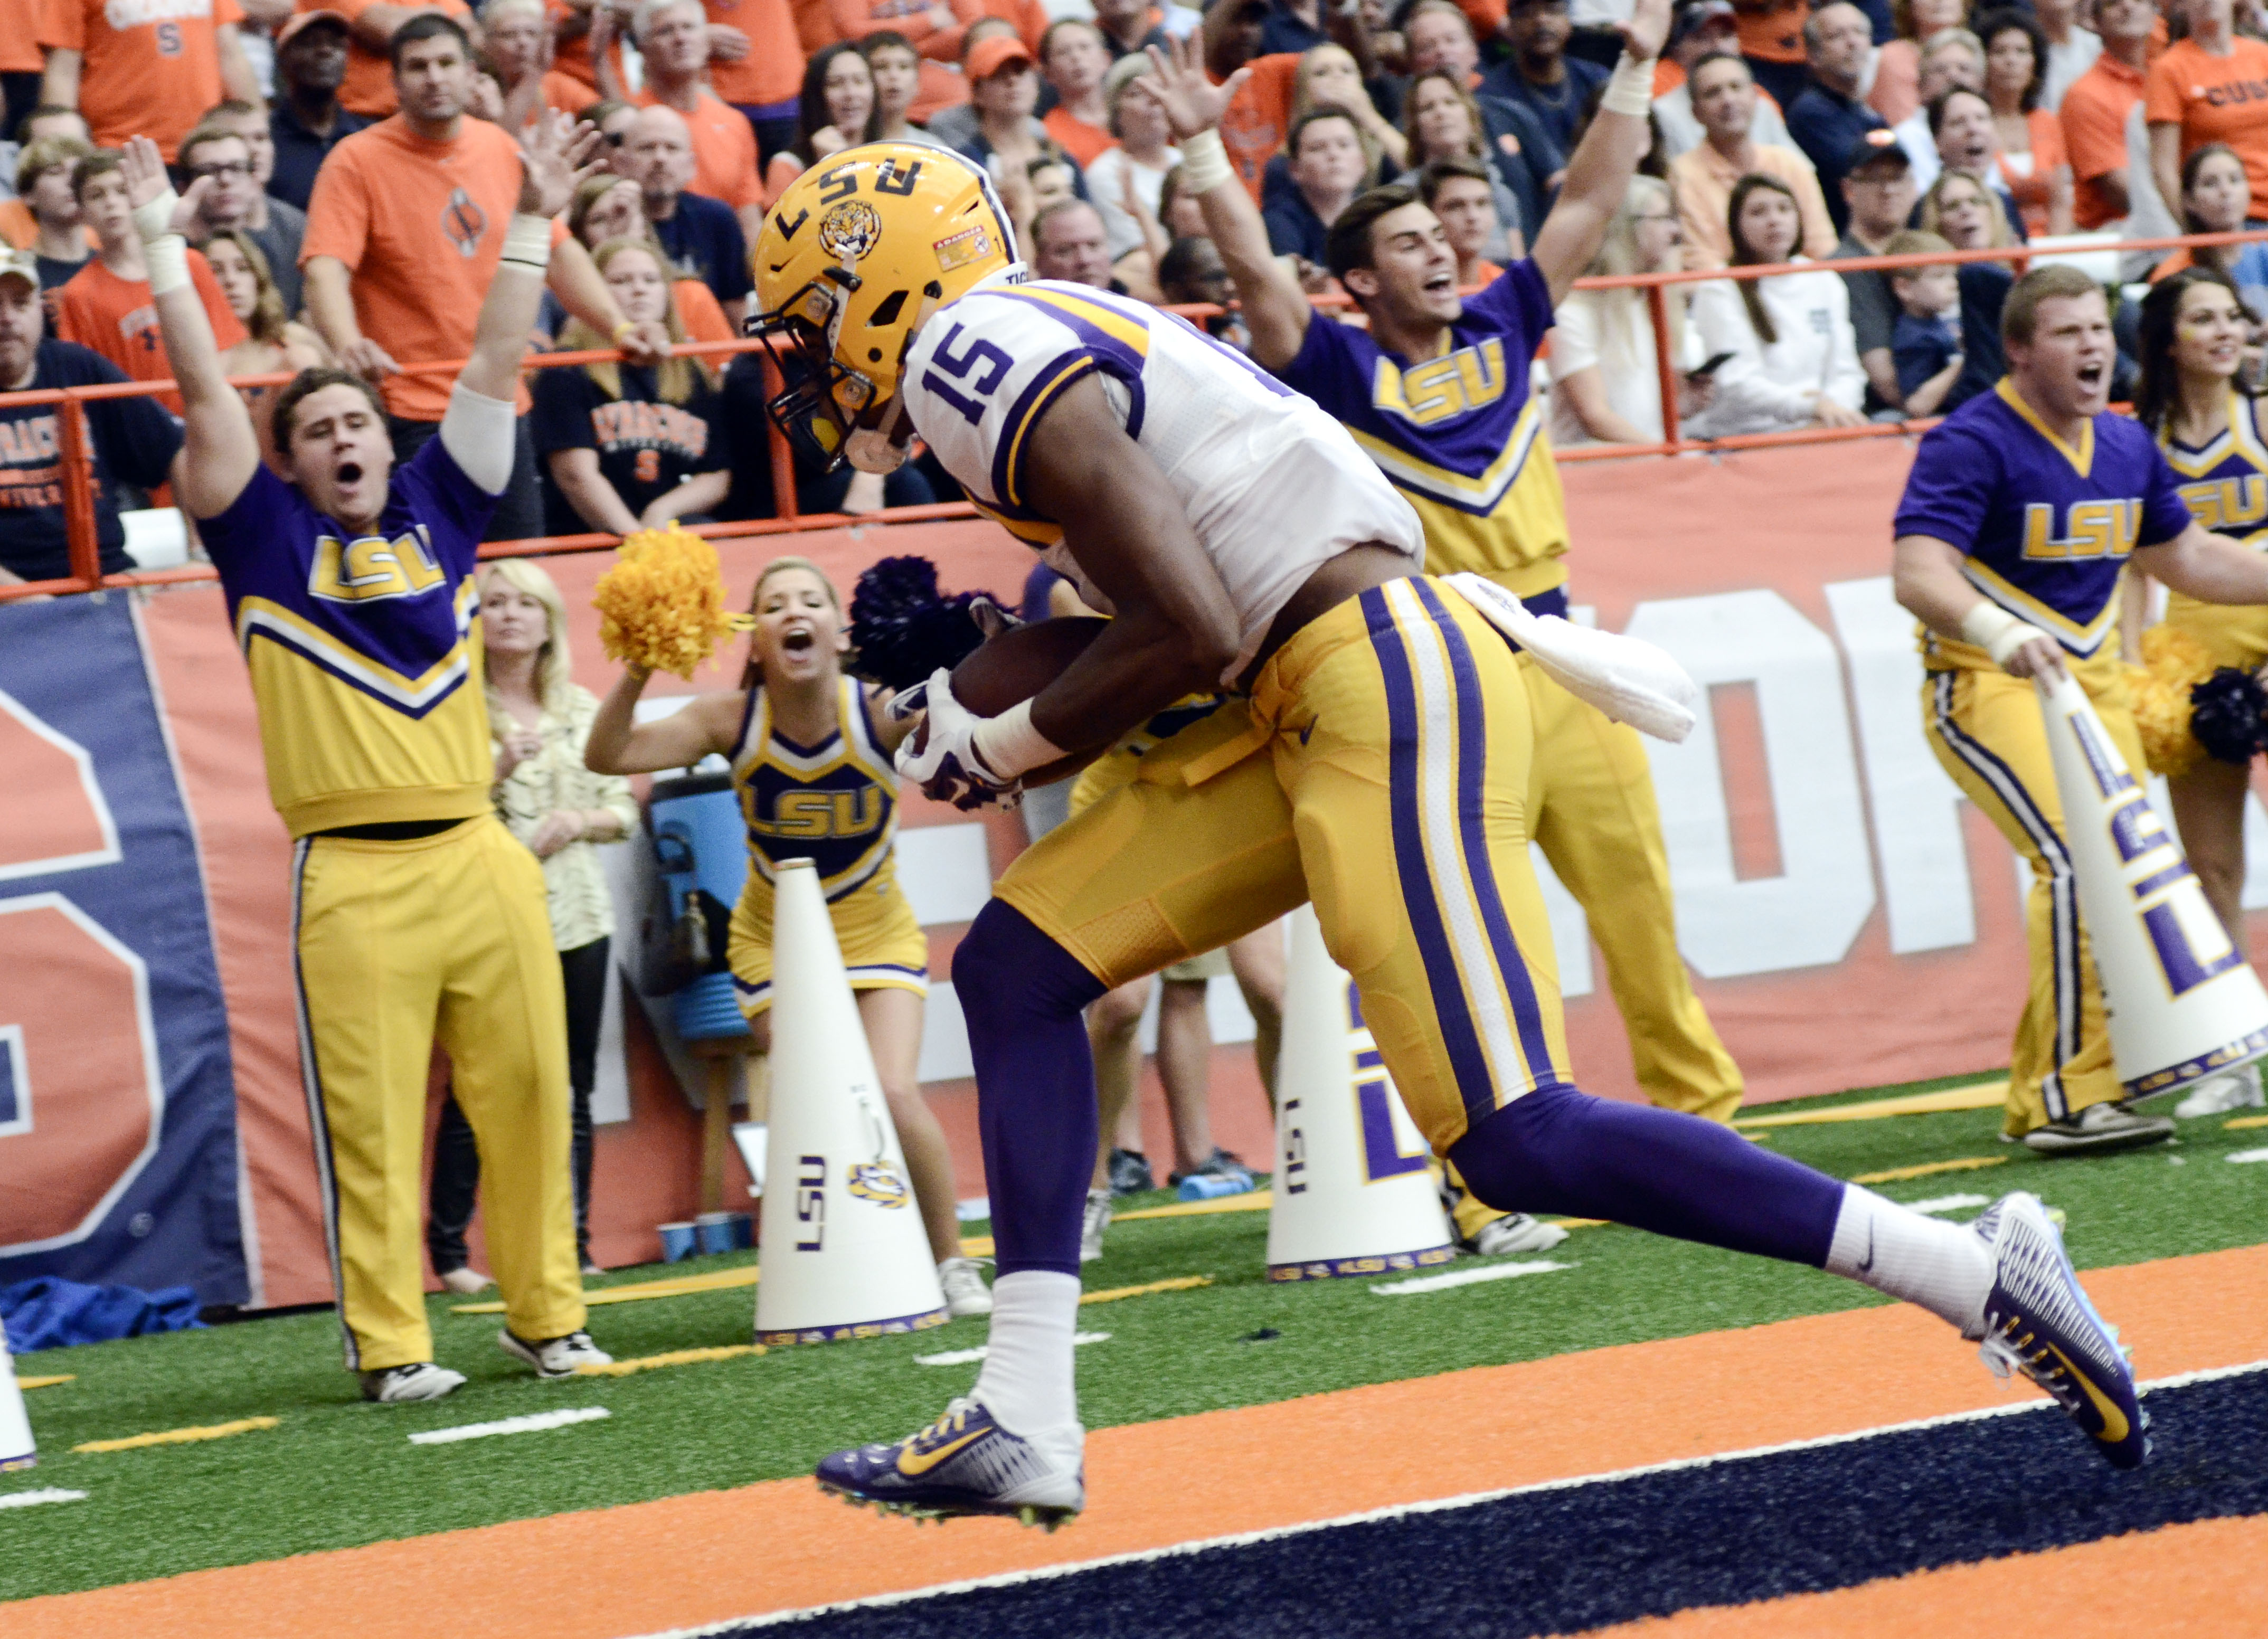 FILE - In this Sept. 26, 2015, file photo, LSU wide receiver Malachi Dupre (15) scores a touchdown during the second half of an NCAA college football game against Syracuse in Syracuse, N.Y. Dupre says he appreciates that the ninth-ranked Tigers can't look